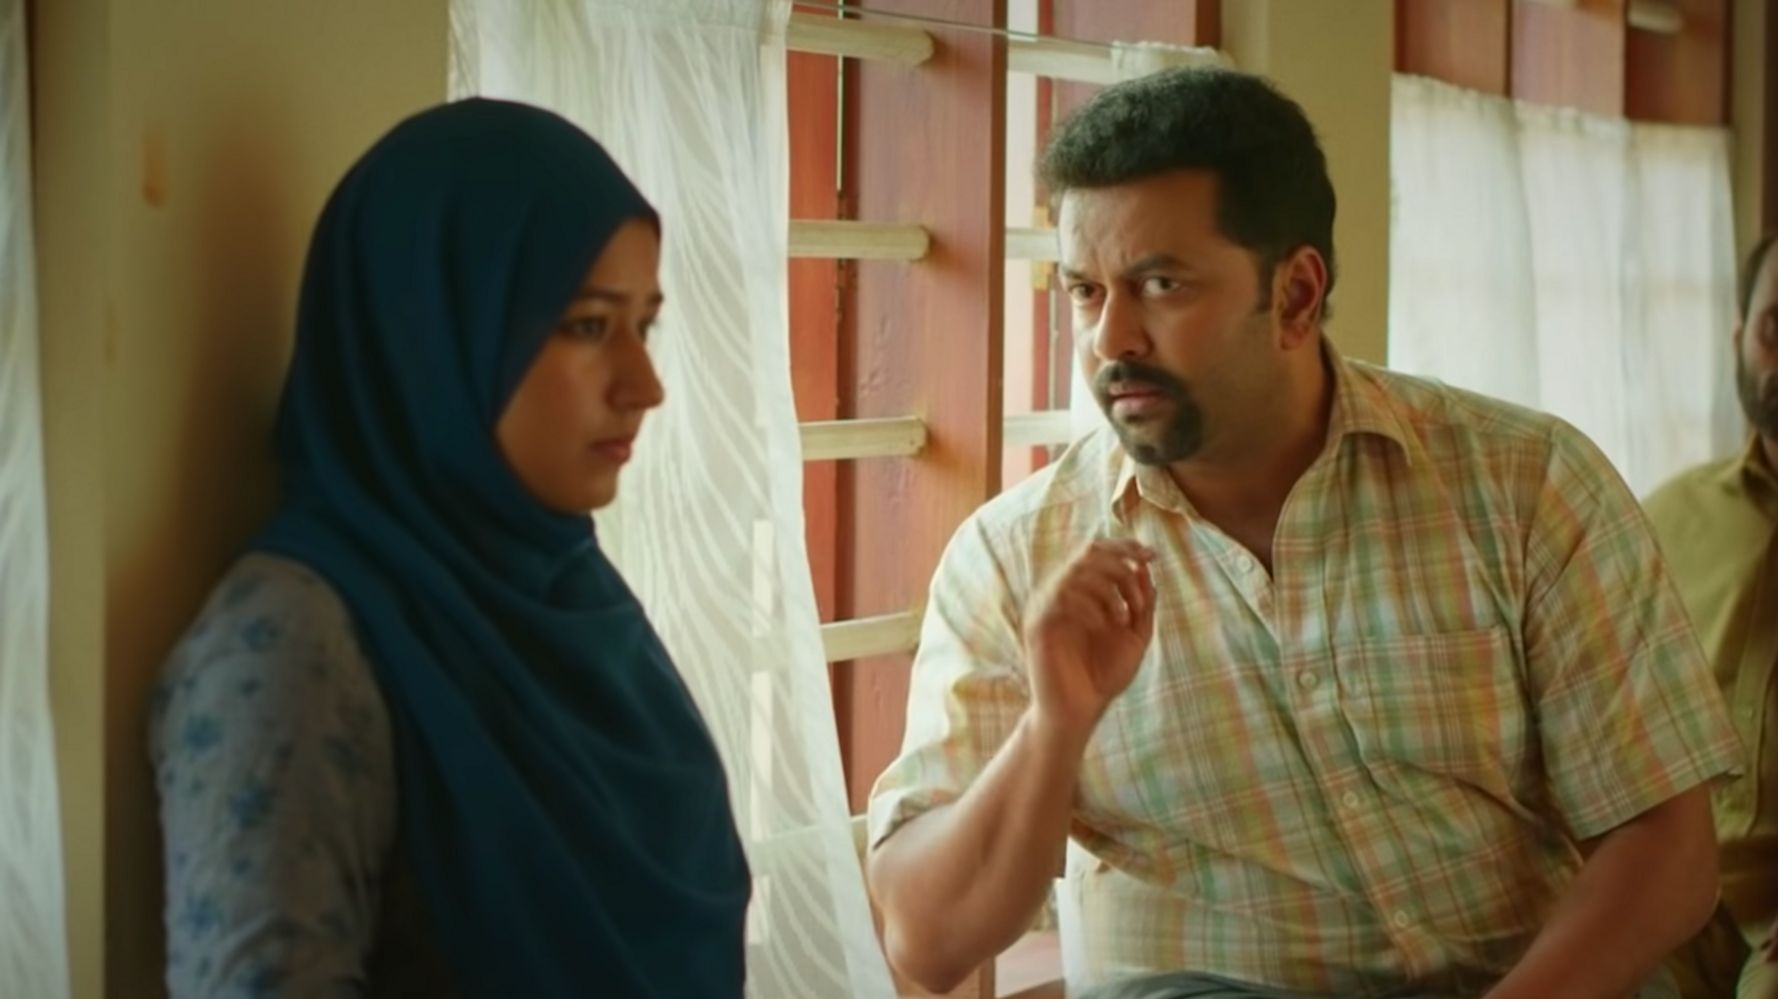 'Halal Love Story' Review: A Simple Film That Takes Itself Too Seriously